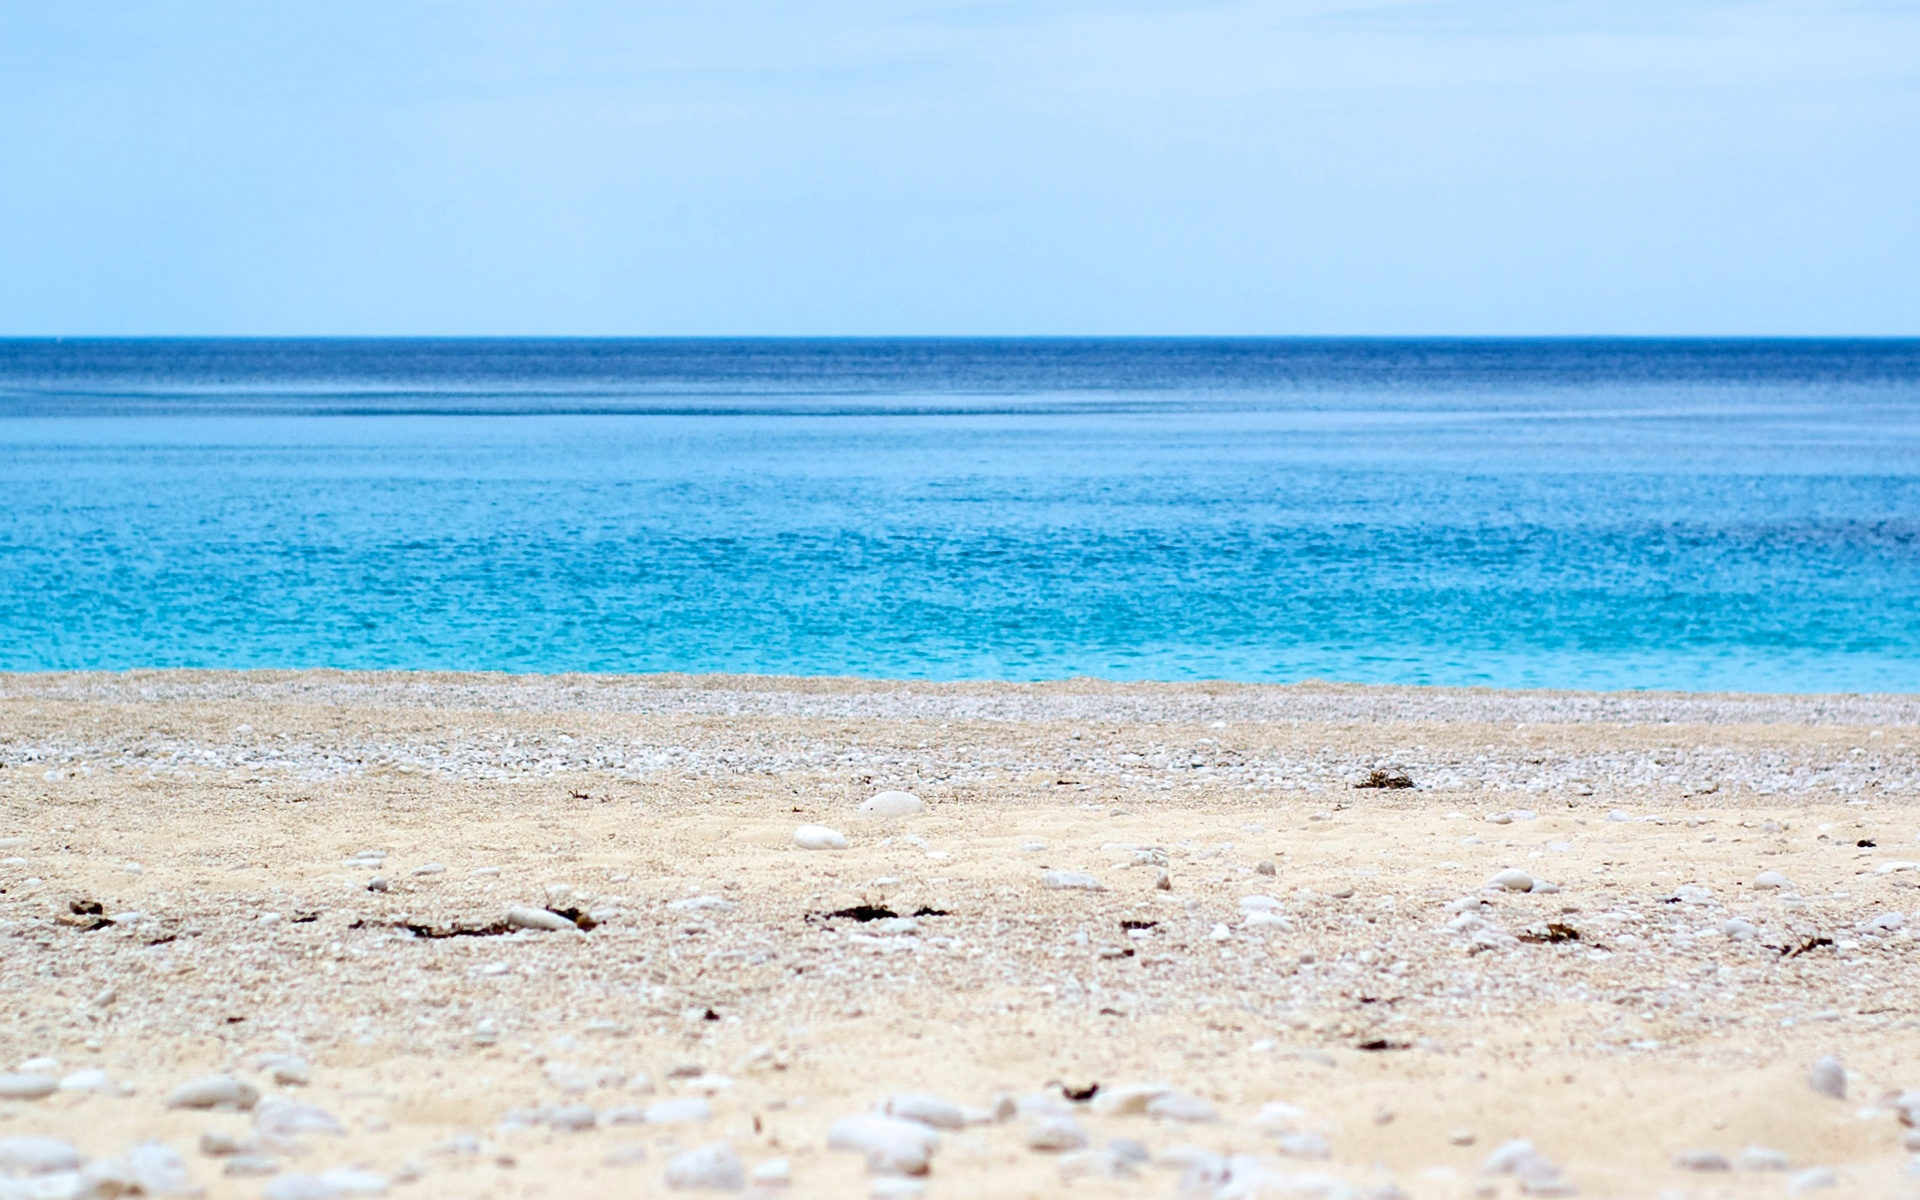 beach, tumblr, computer, wallpaper, headers, twitter, kefalonia ...